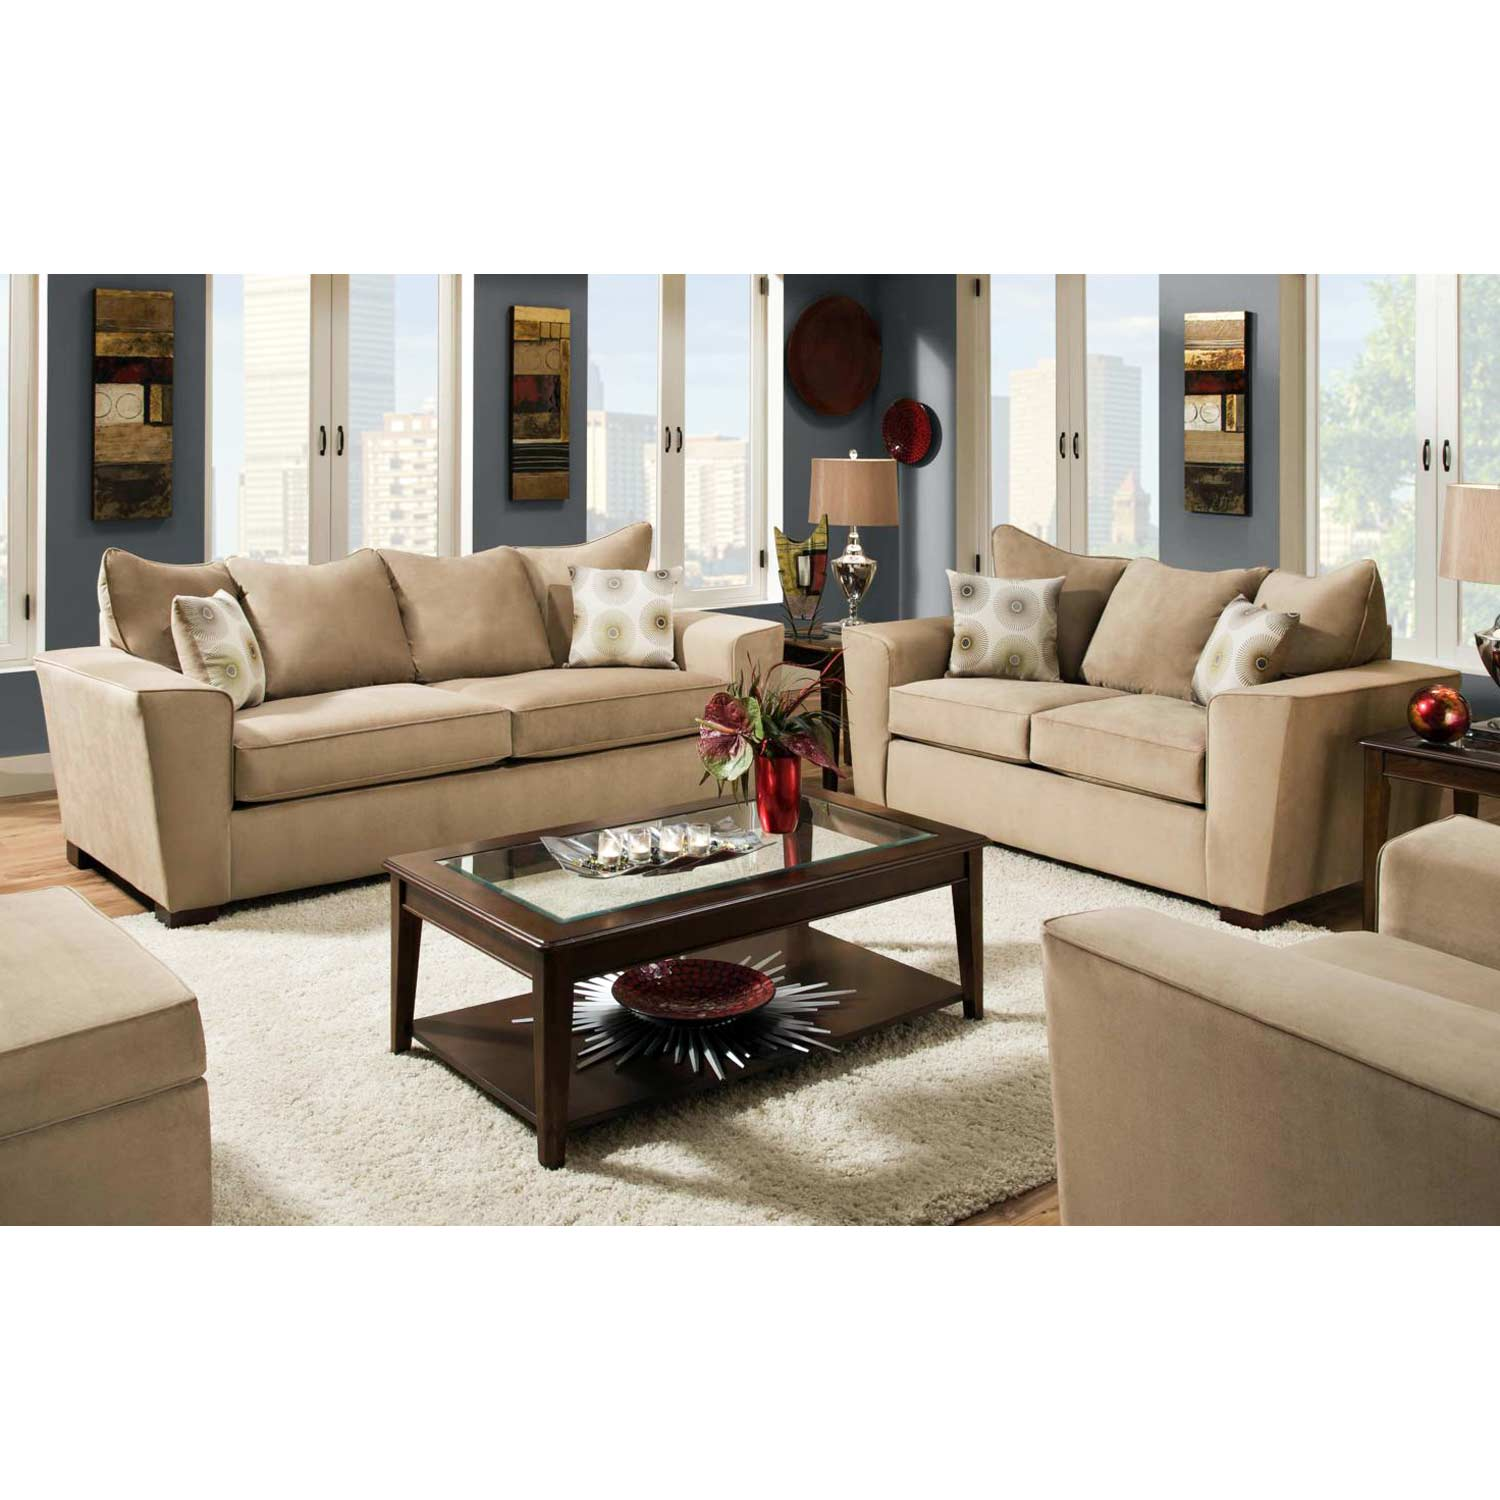 Furniture Stores In Escondido Healthy Back Store Furniture Shops Escondido Cindy S Furniture